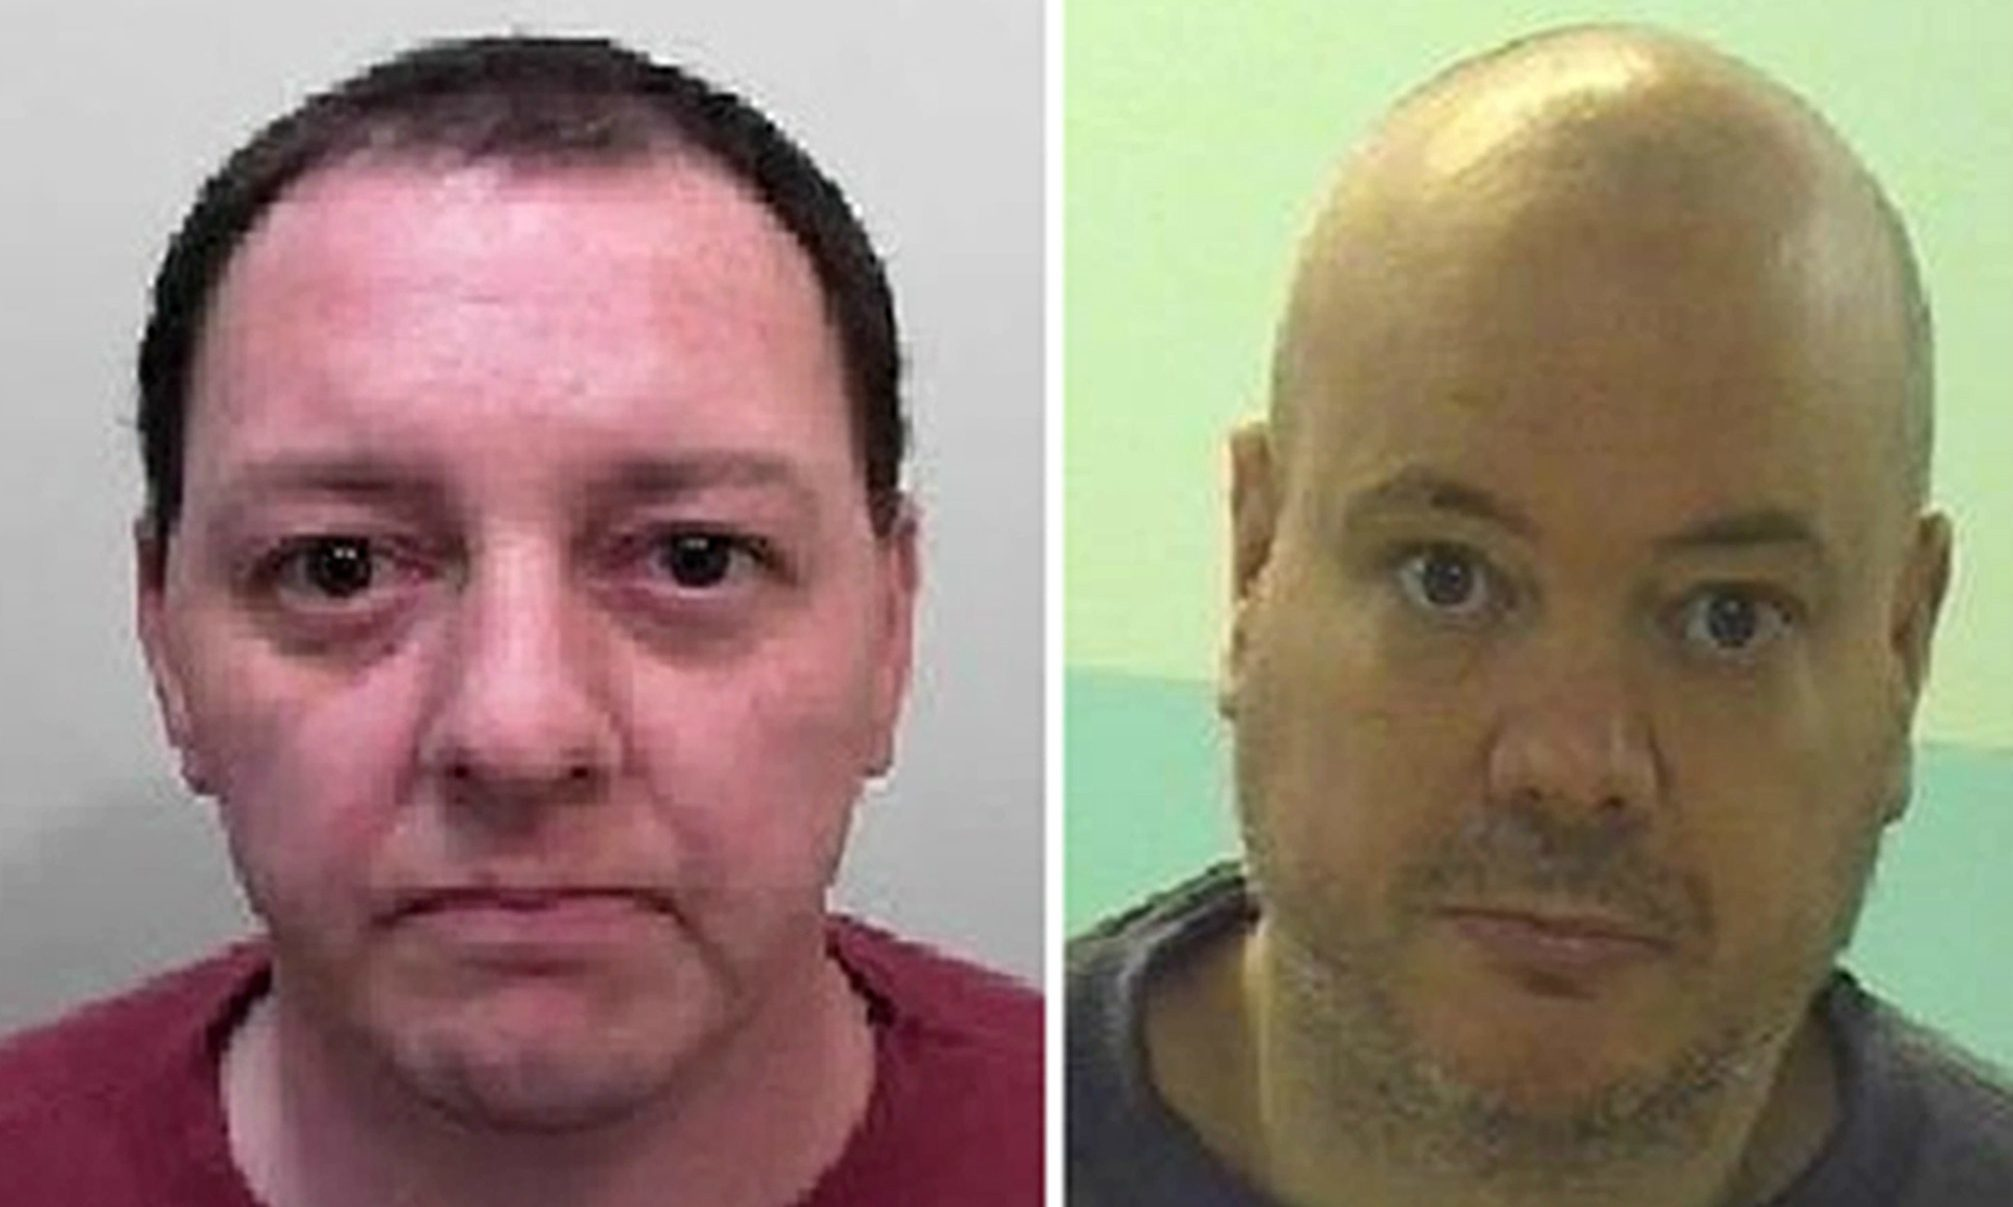 Christopher Addison and Scott Noon absconded last Thursday